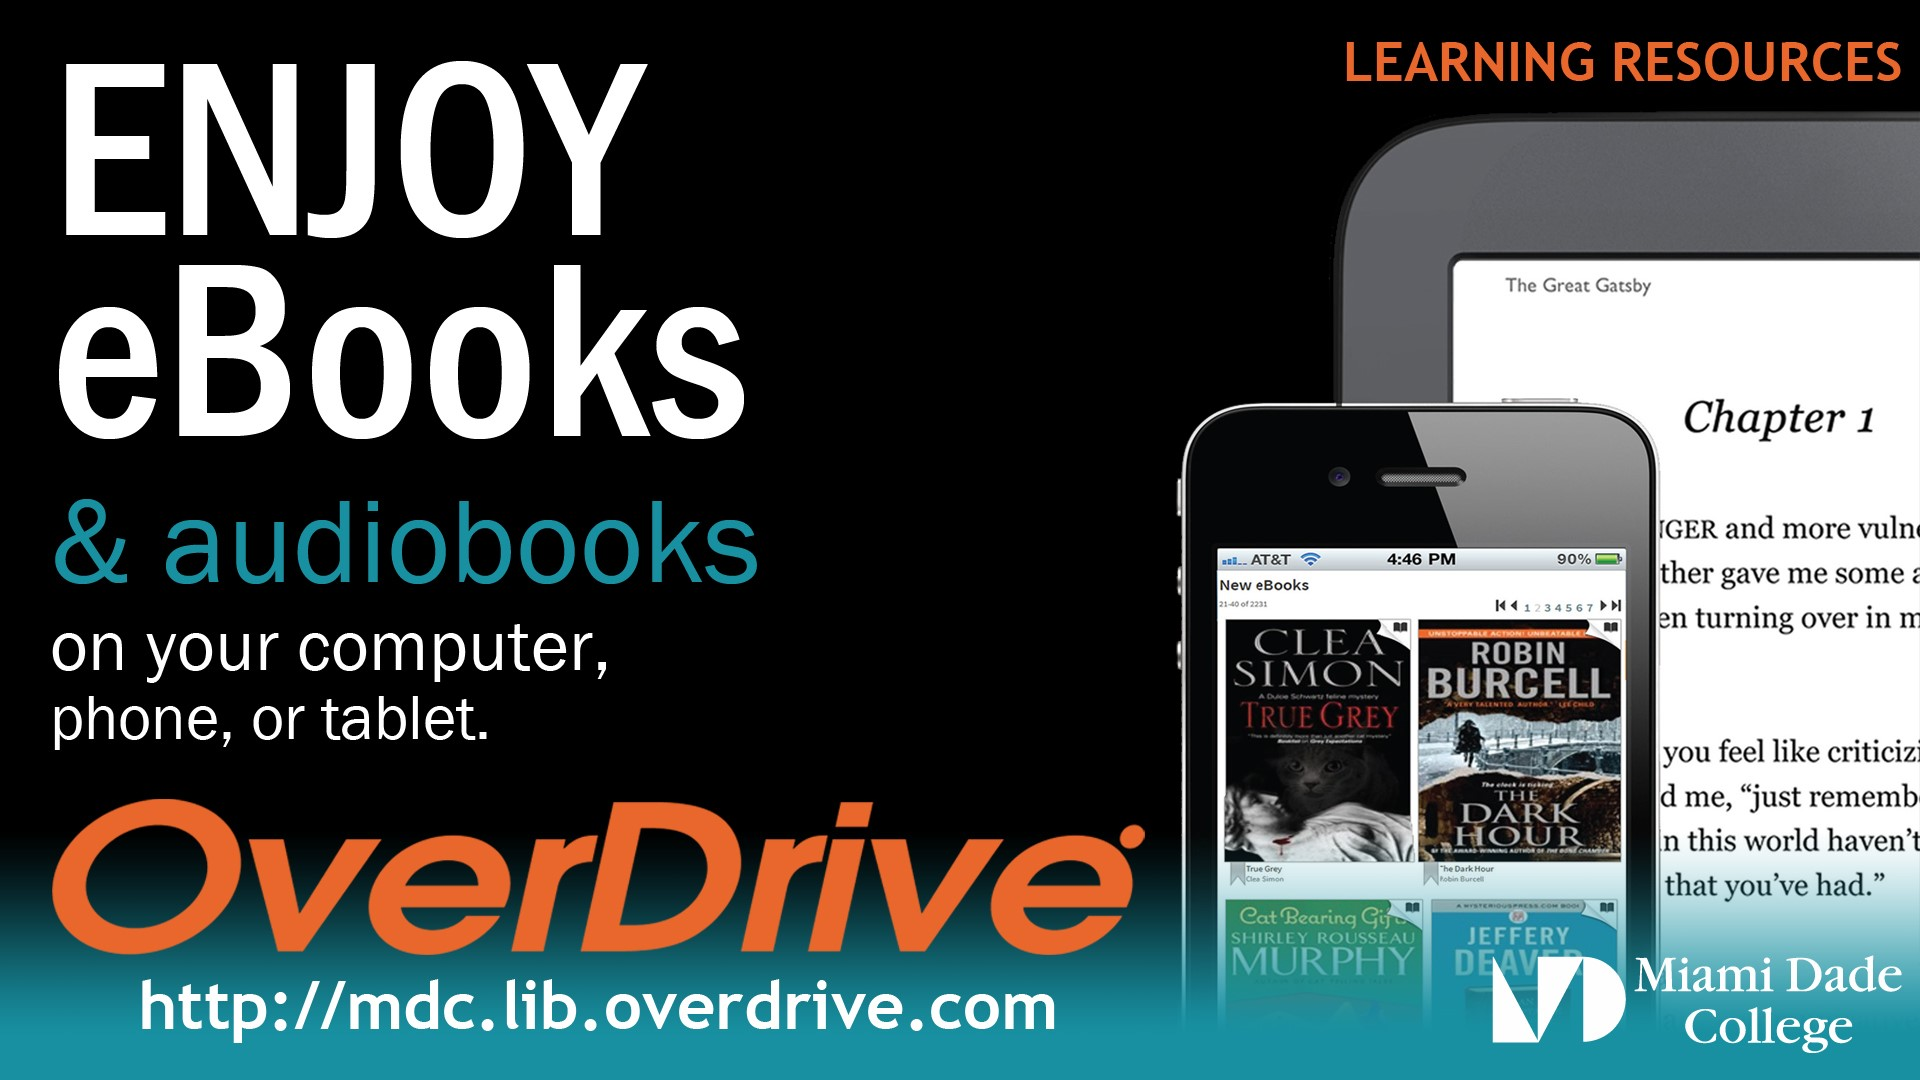 Enjoy eBooks and Audiobooks with Overdrive http://mdc.lib.overdrive.com